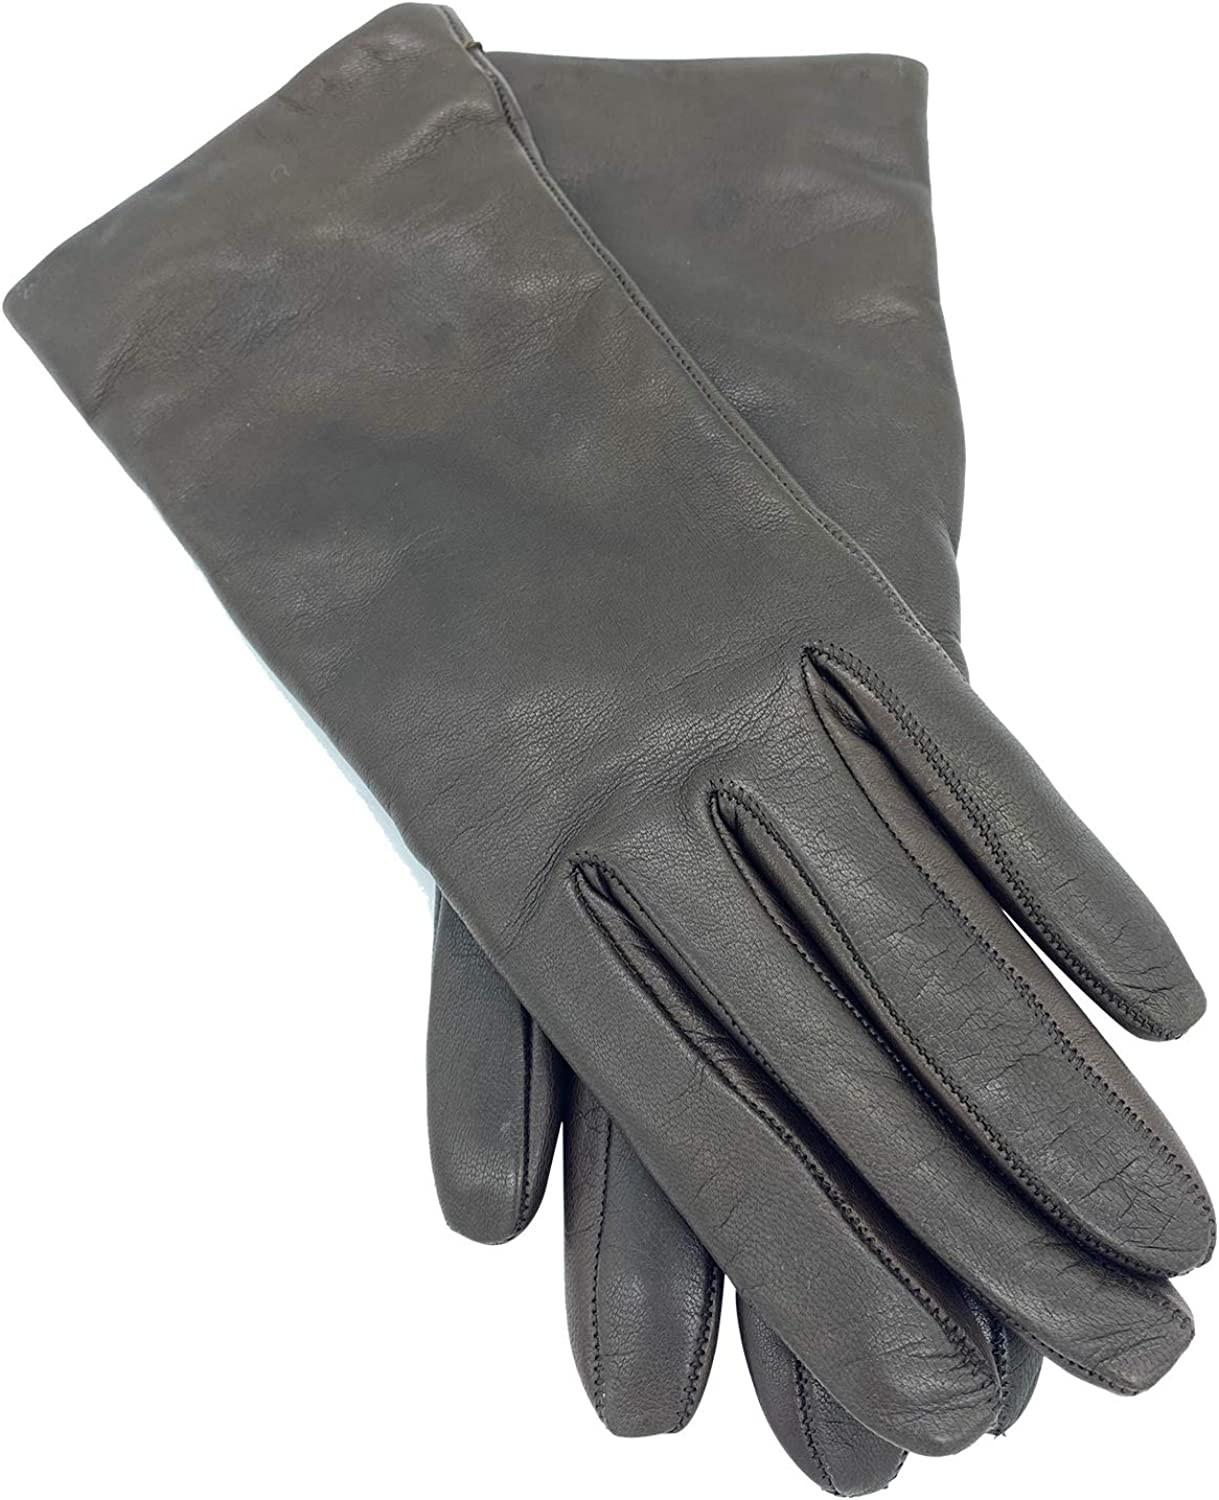 Women's Sheepskin Leather Winter Gloves with Rabbit Fur & Cashmere Lining - Mid Length, Touchscreen Friendly